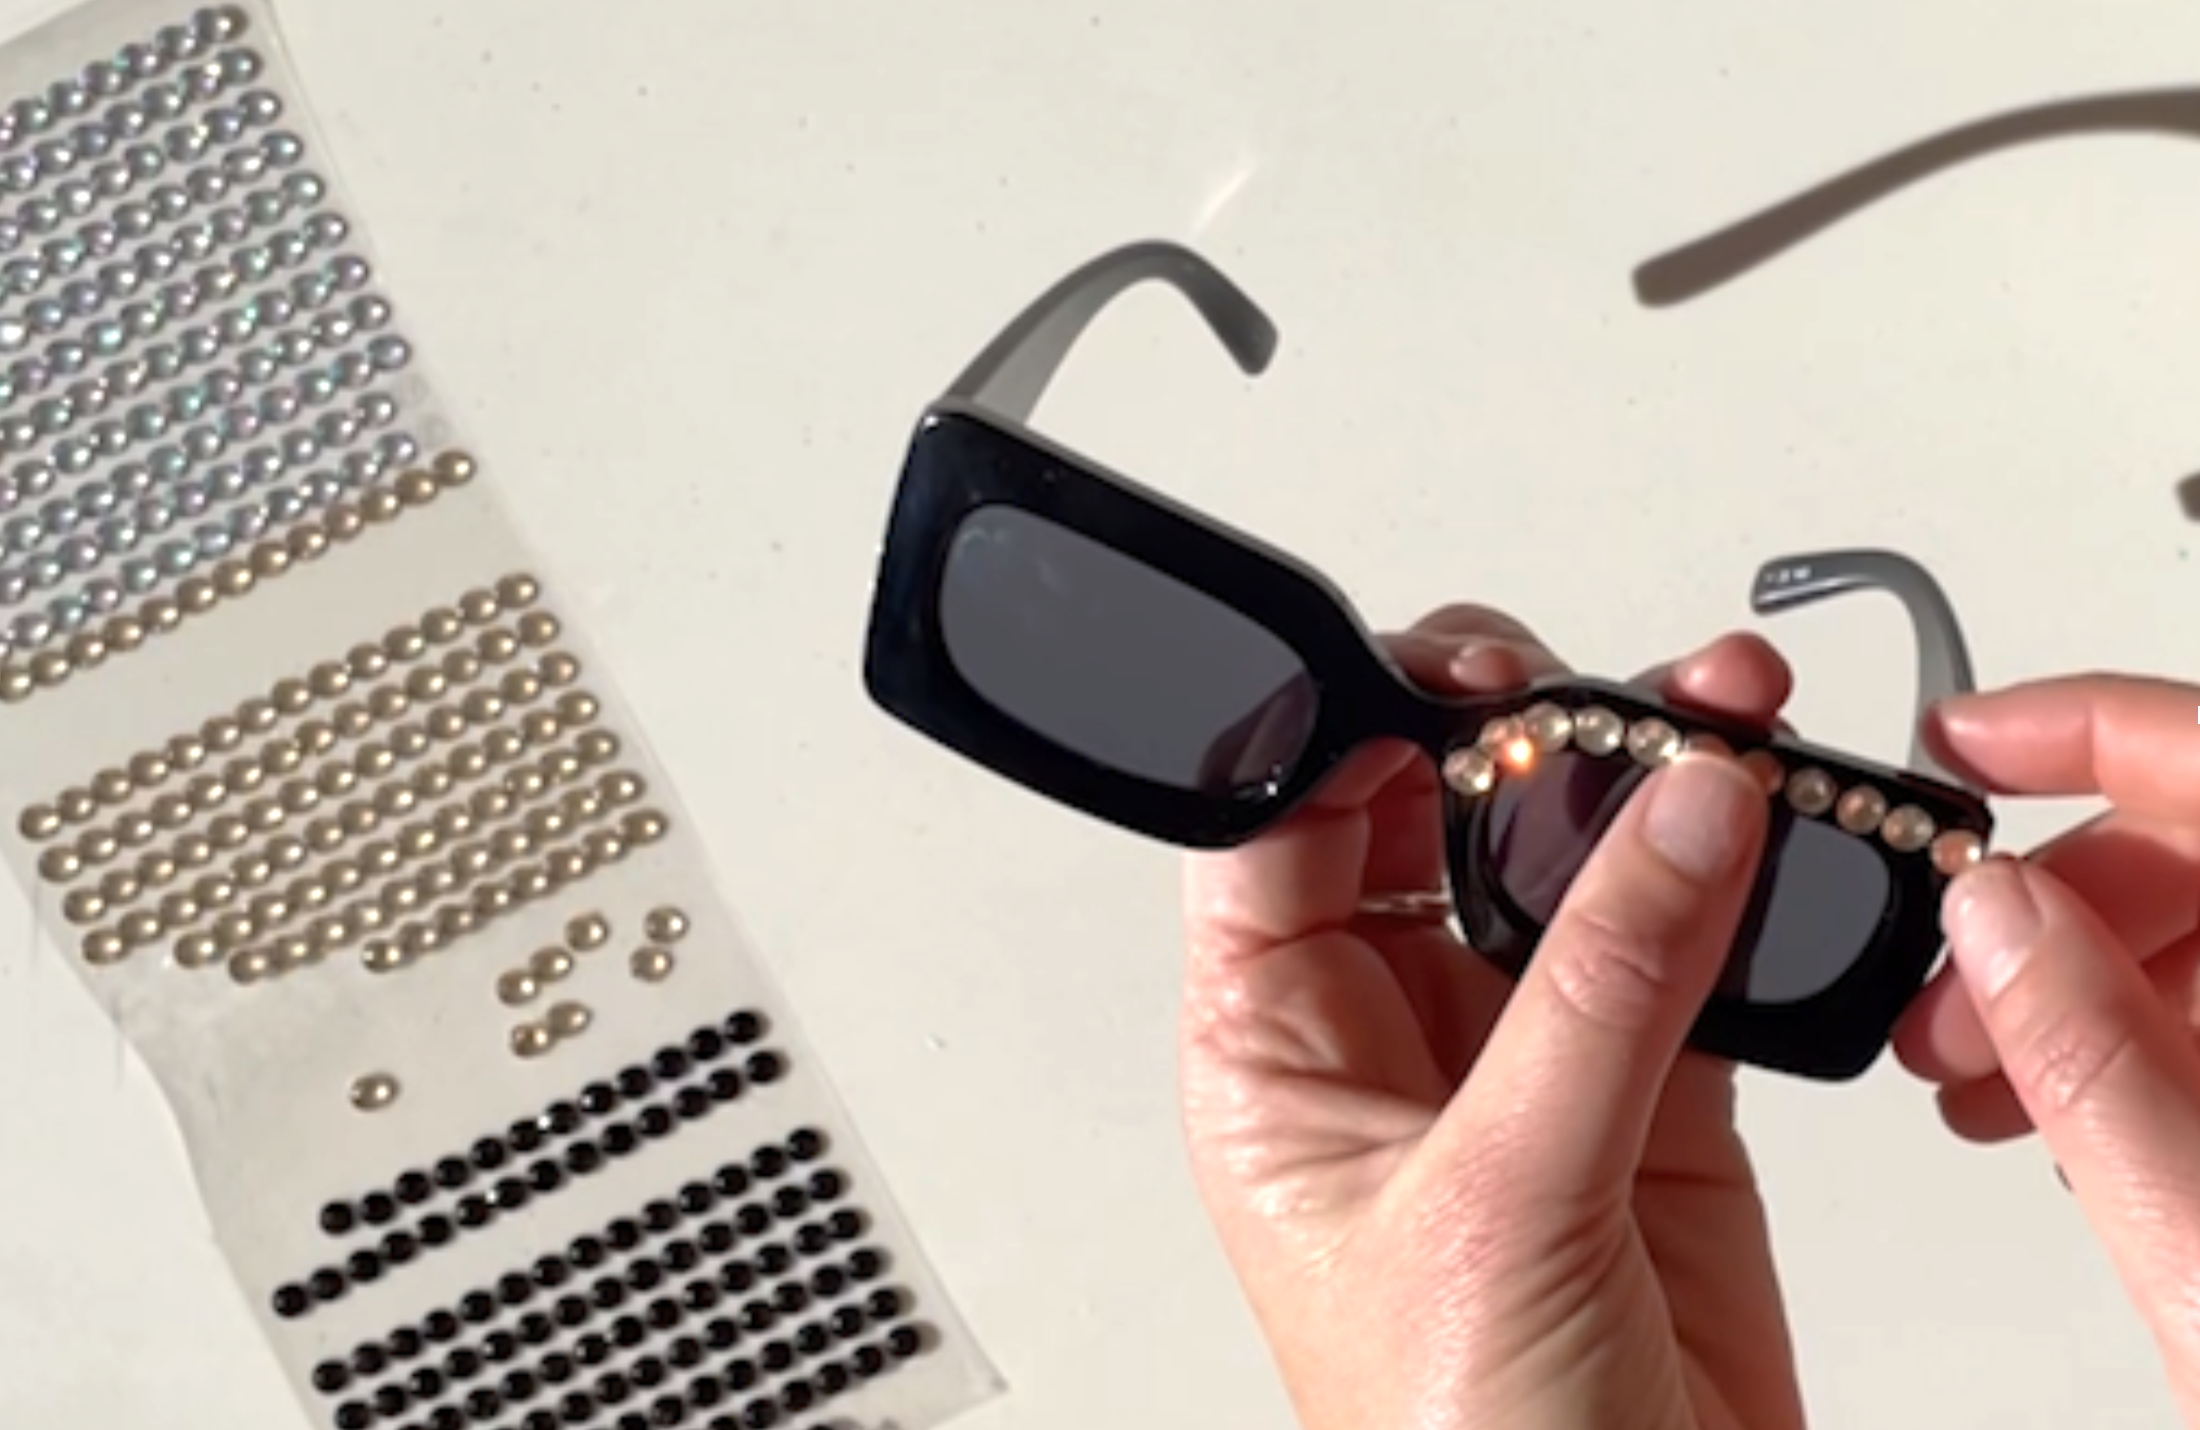 Take a whole row of rhinestones from your pack. Starting at the bridge of the nose, stick the rhinestones across the top of the sunglasses. Tear off any stones that don't fit straight across the top.